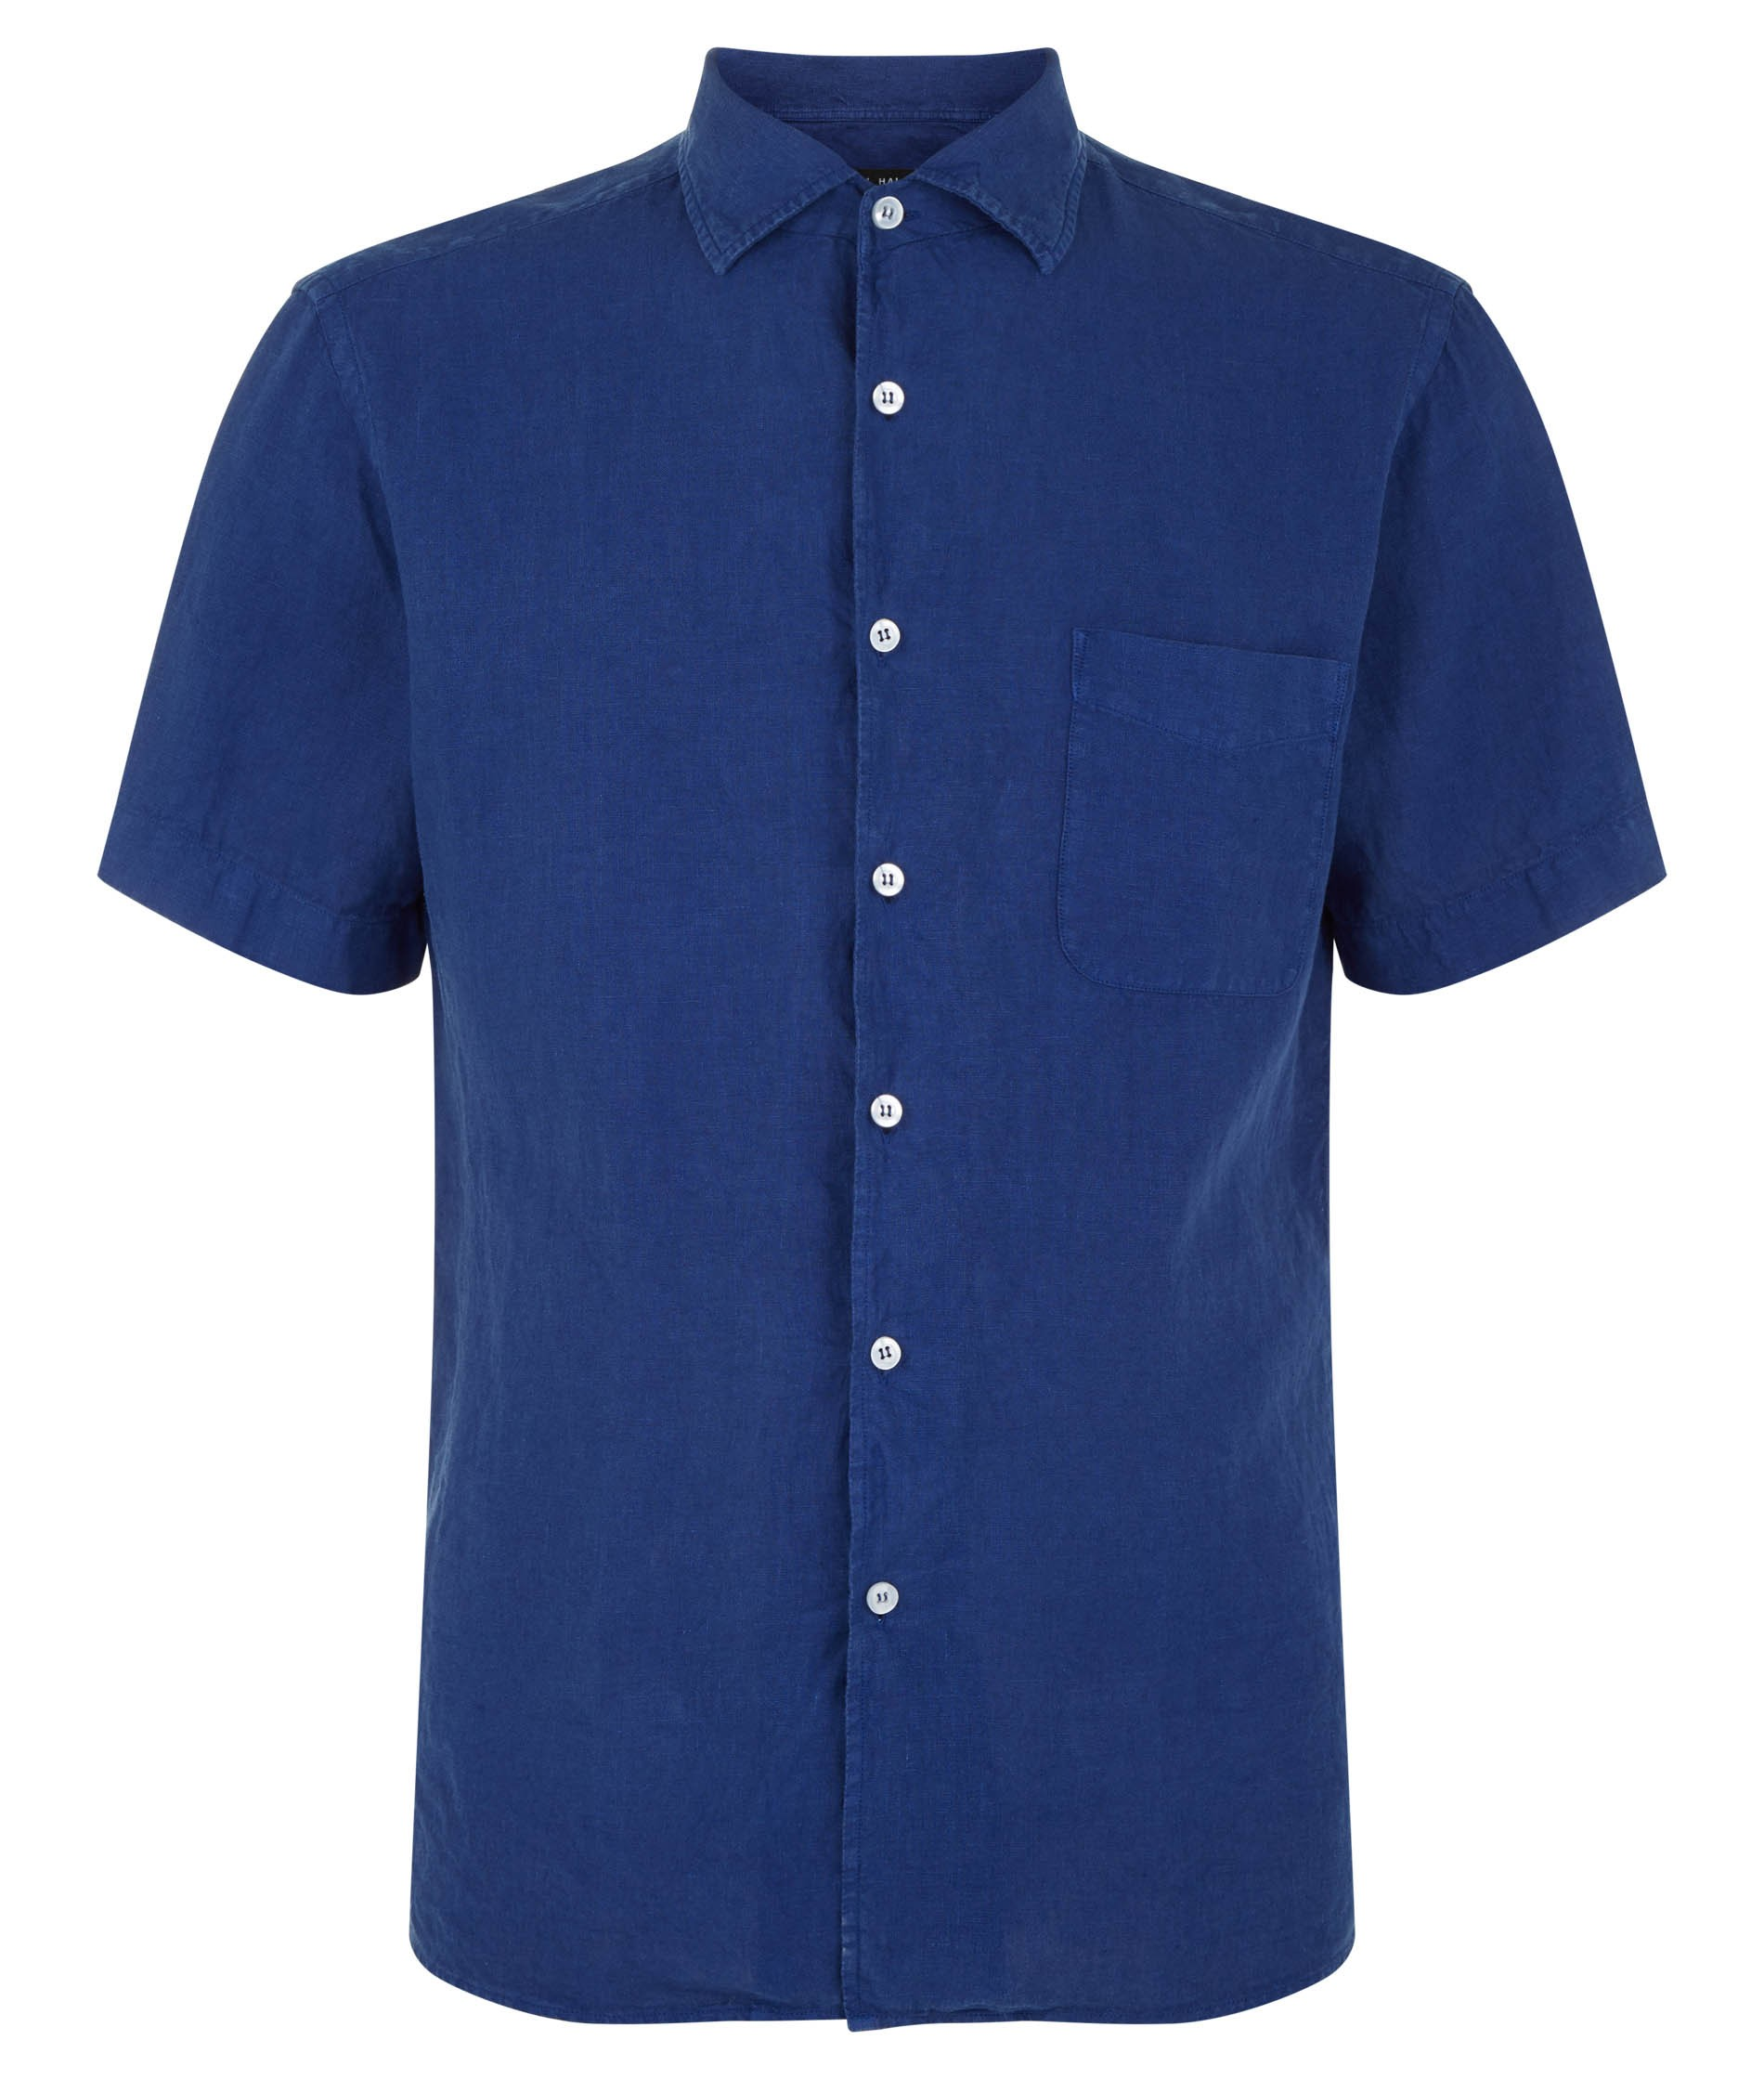 Nigel Hall Navy Short Sleeve Linen Shirt (Remo)